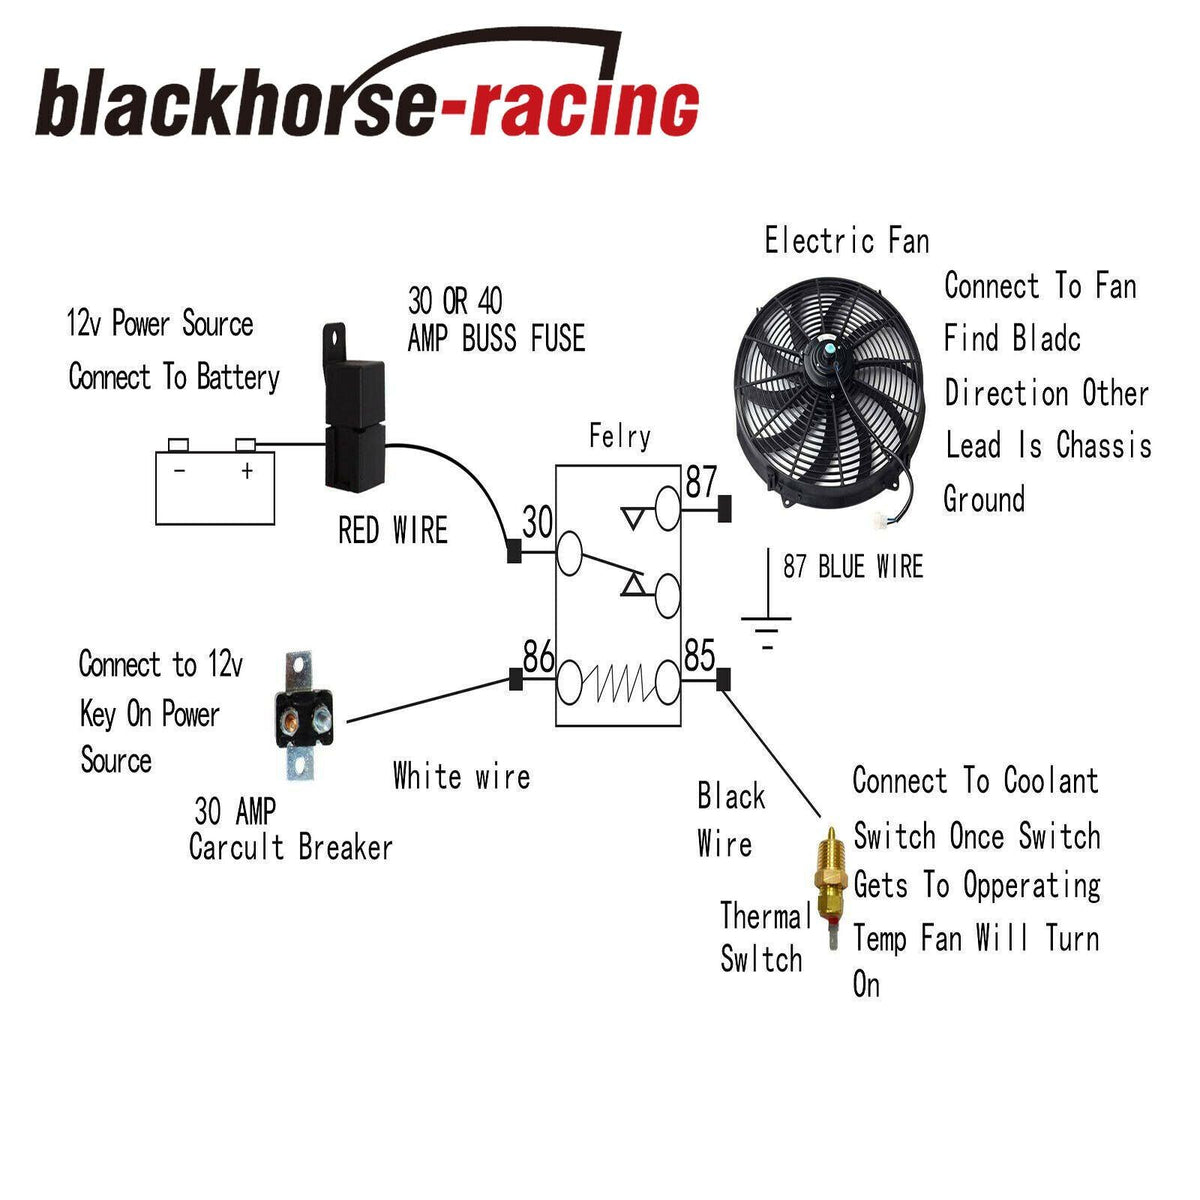 14 u0026 39  u0026 39  black electric radiator fan high 2000 cfm thermostat